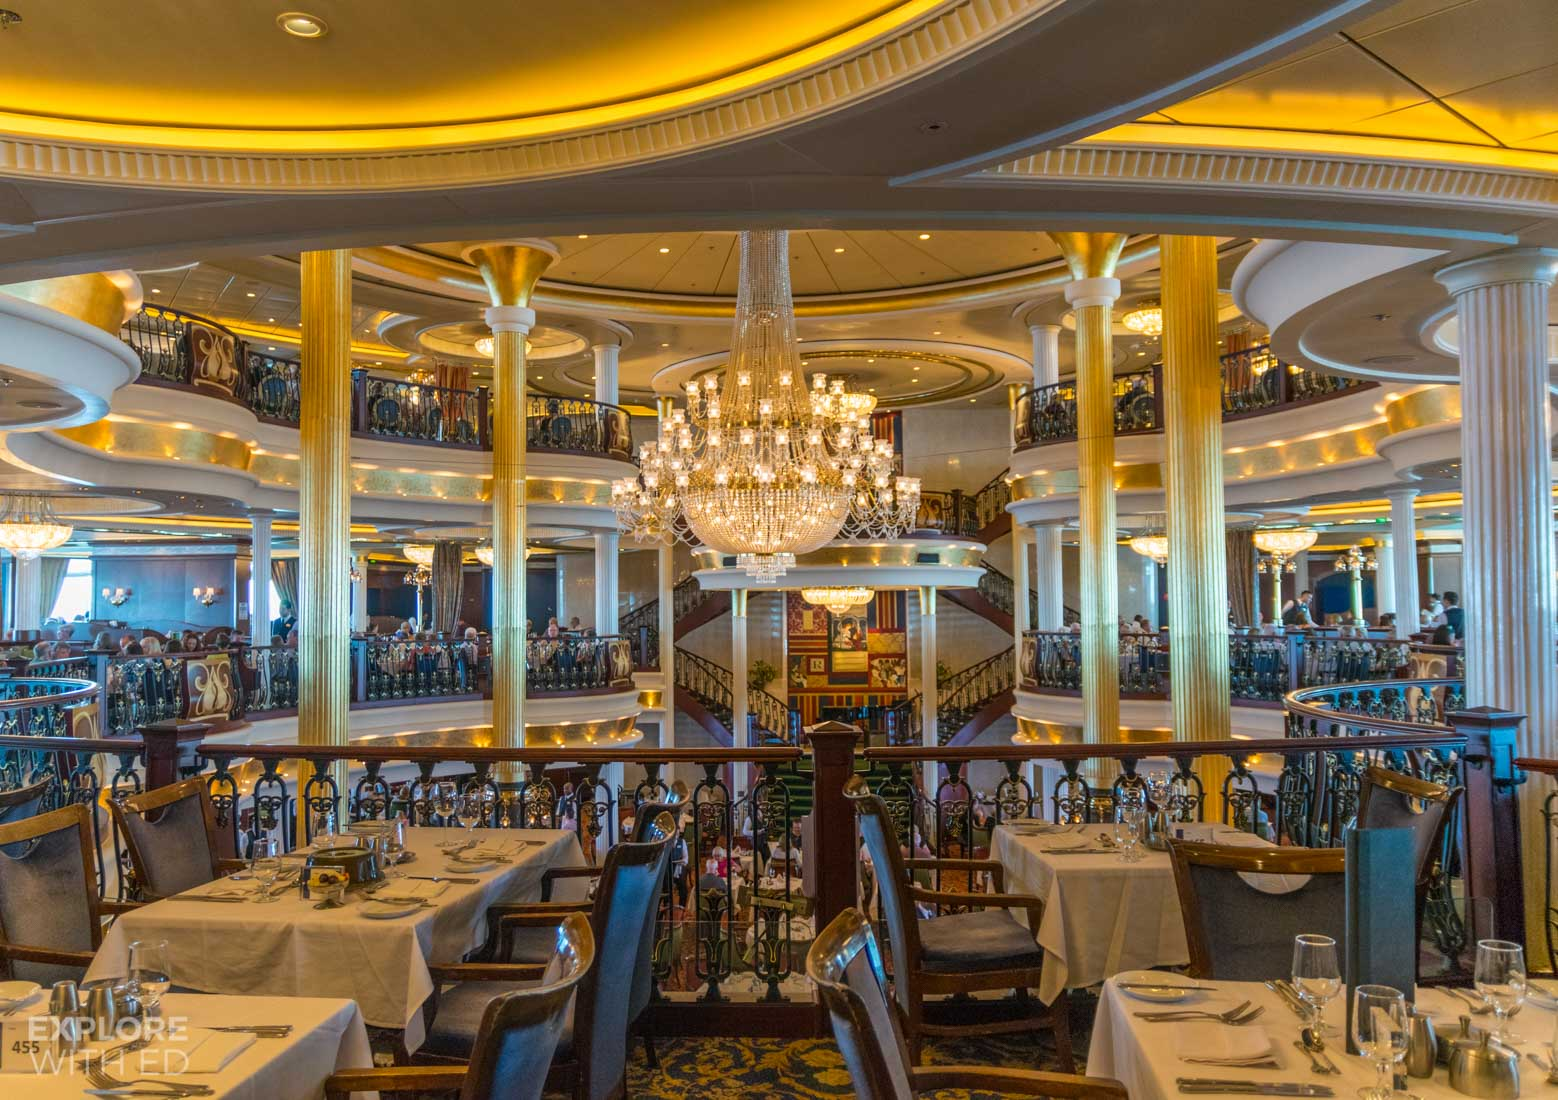 The main dining room onboard Independence of the Seas